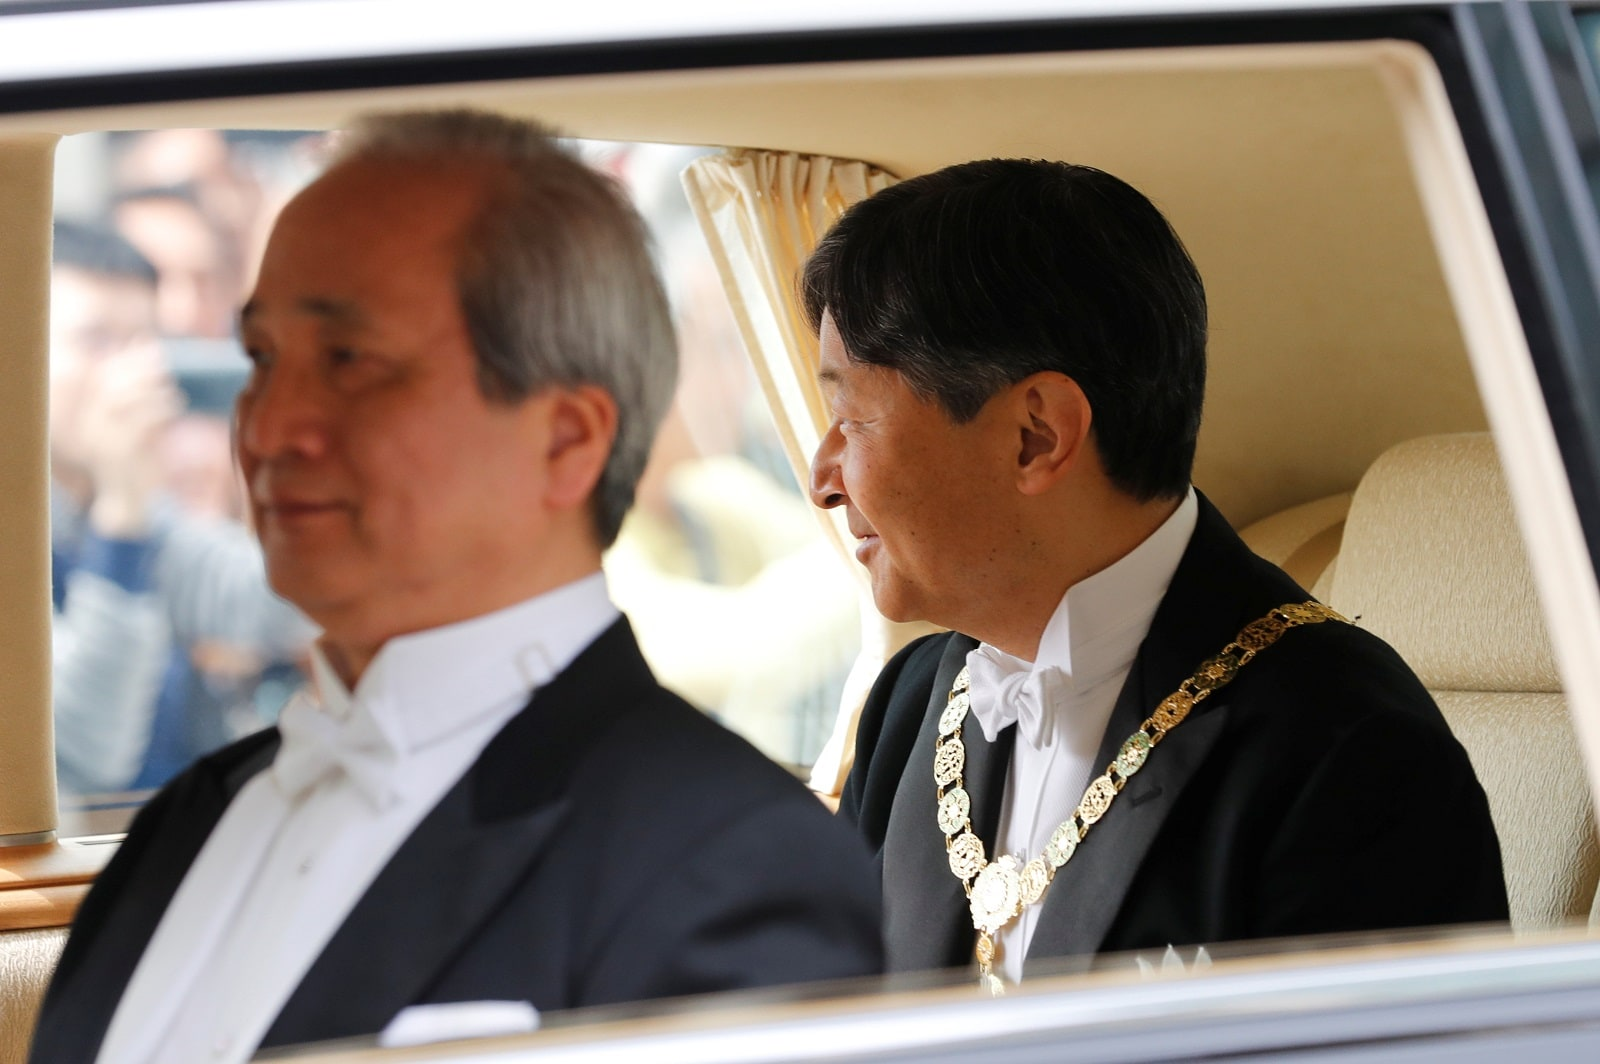 Japan's Emperor Naruhito looks from his vehicle upon arriving at the Imperial Palace in Tokyo, Japan May 1, 2019. REUTERS/Kim Kyung-Hoon